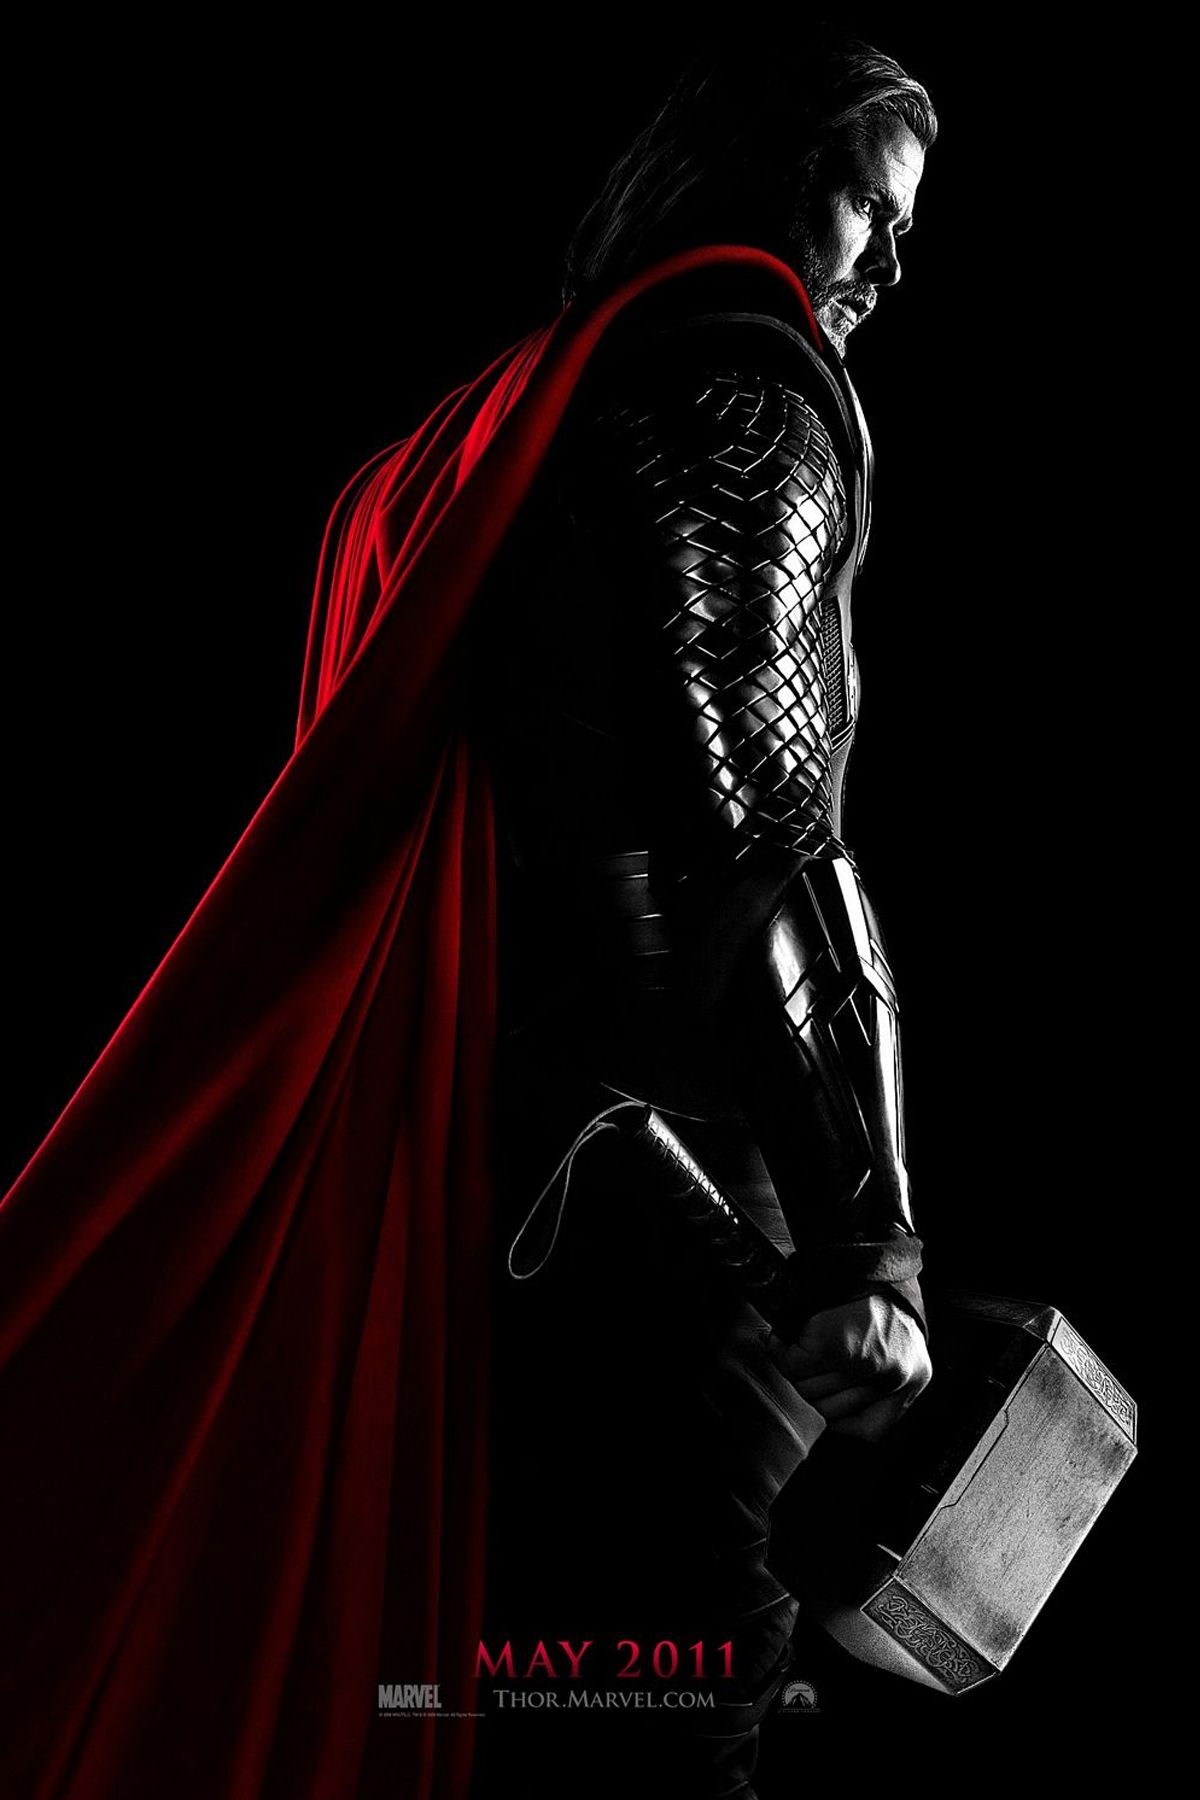 thor movie posters | Thor Movie Poster | Movie News Latest Trailer, Movie Poster, Film ...